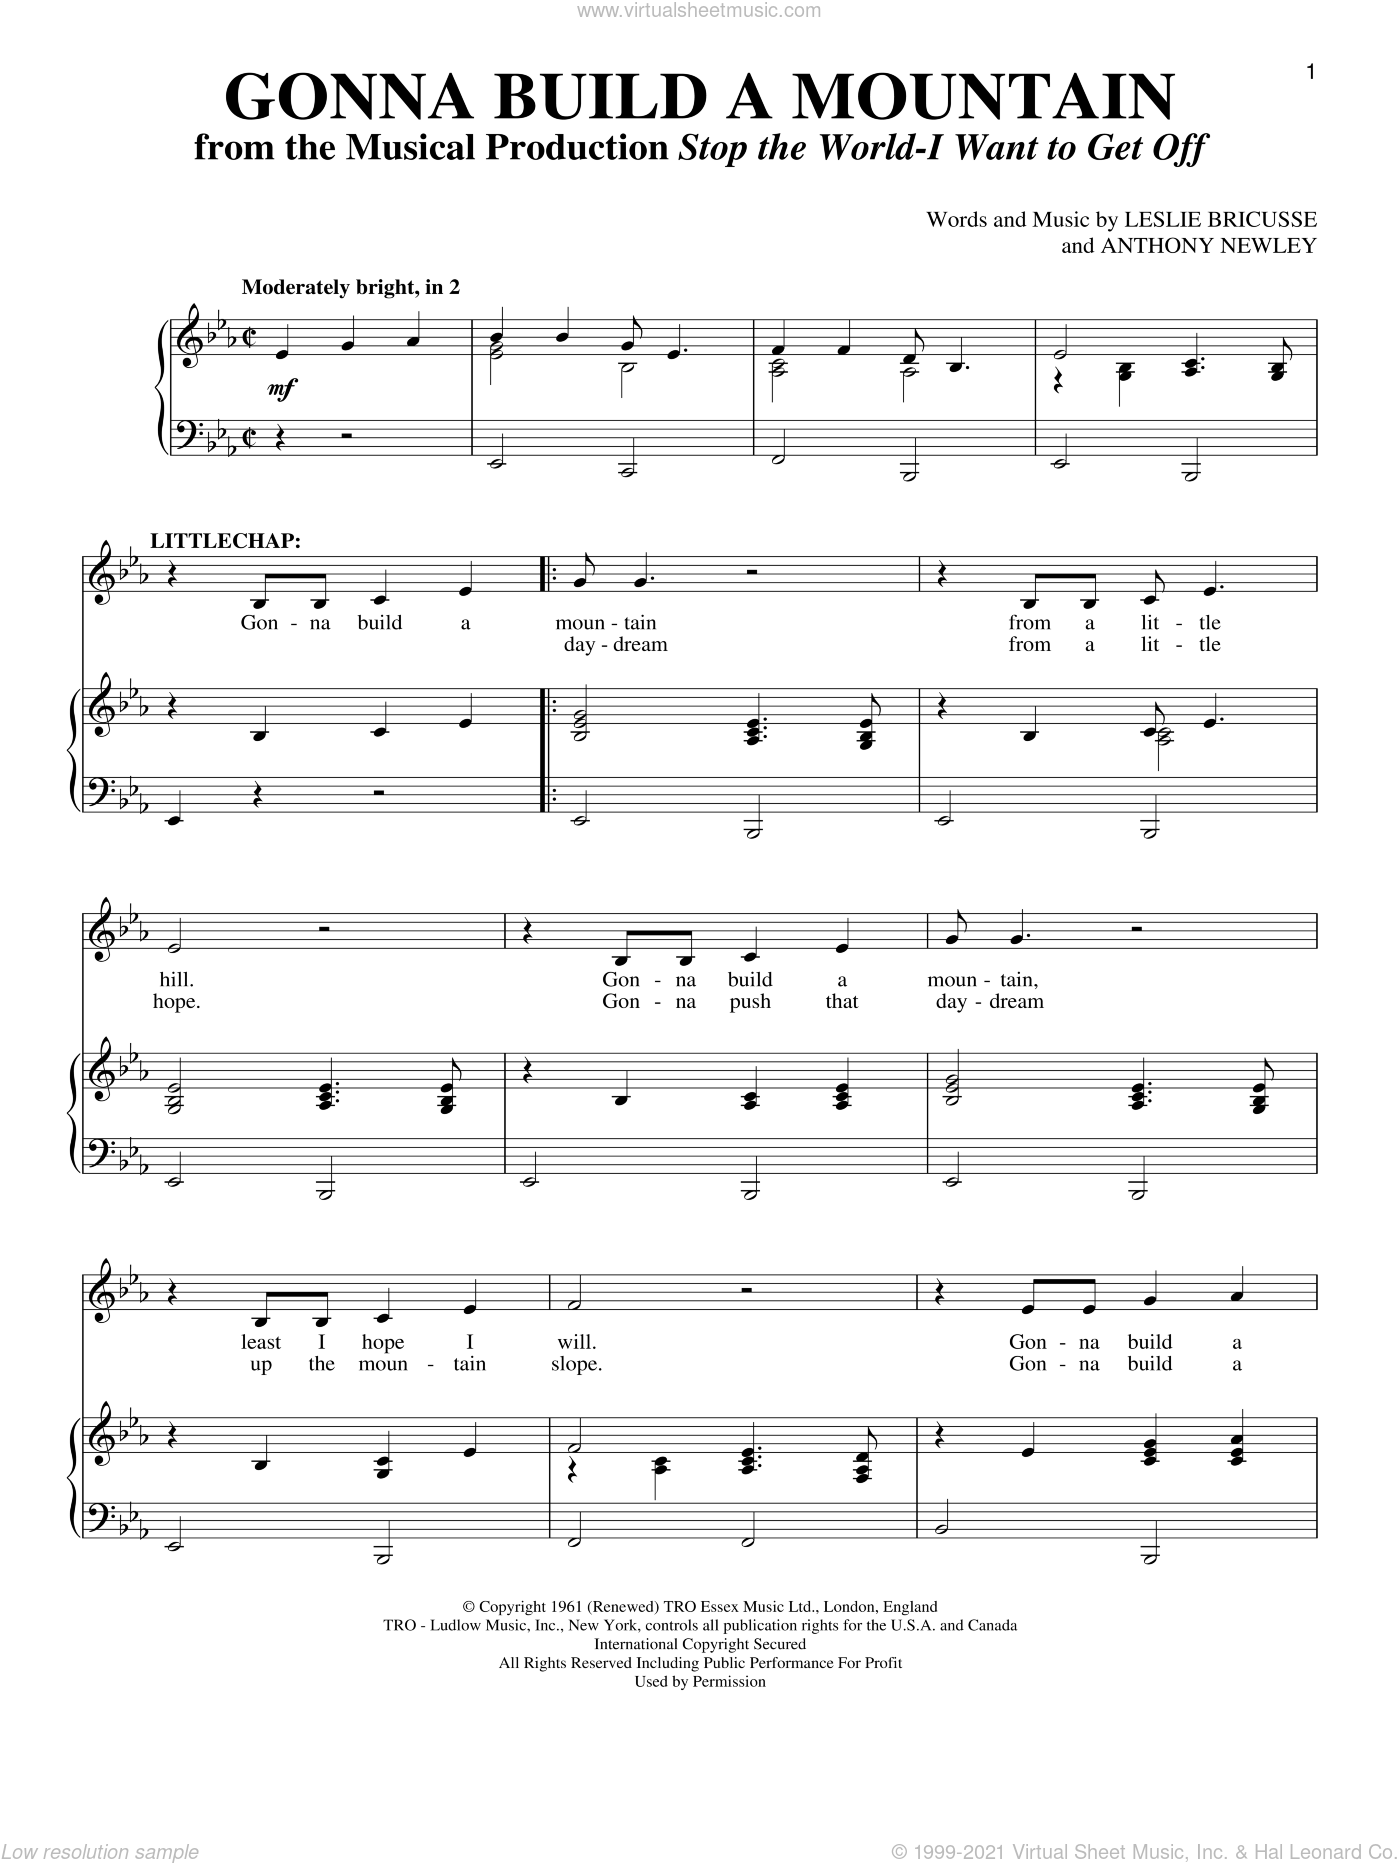 Gonna Build A Mountain sheet music for voice and piano by Leslie Bricusse and Anthony Newley, intermediate skill level